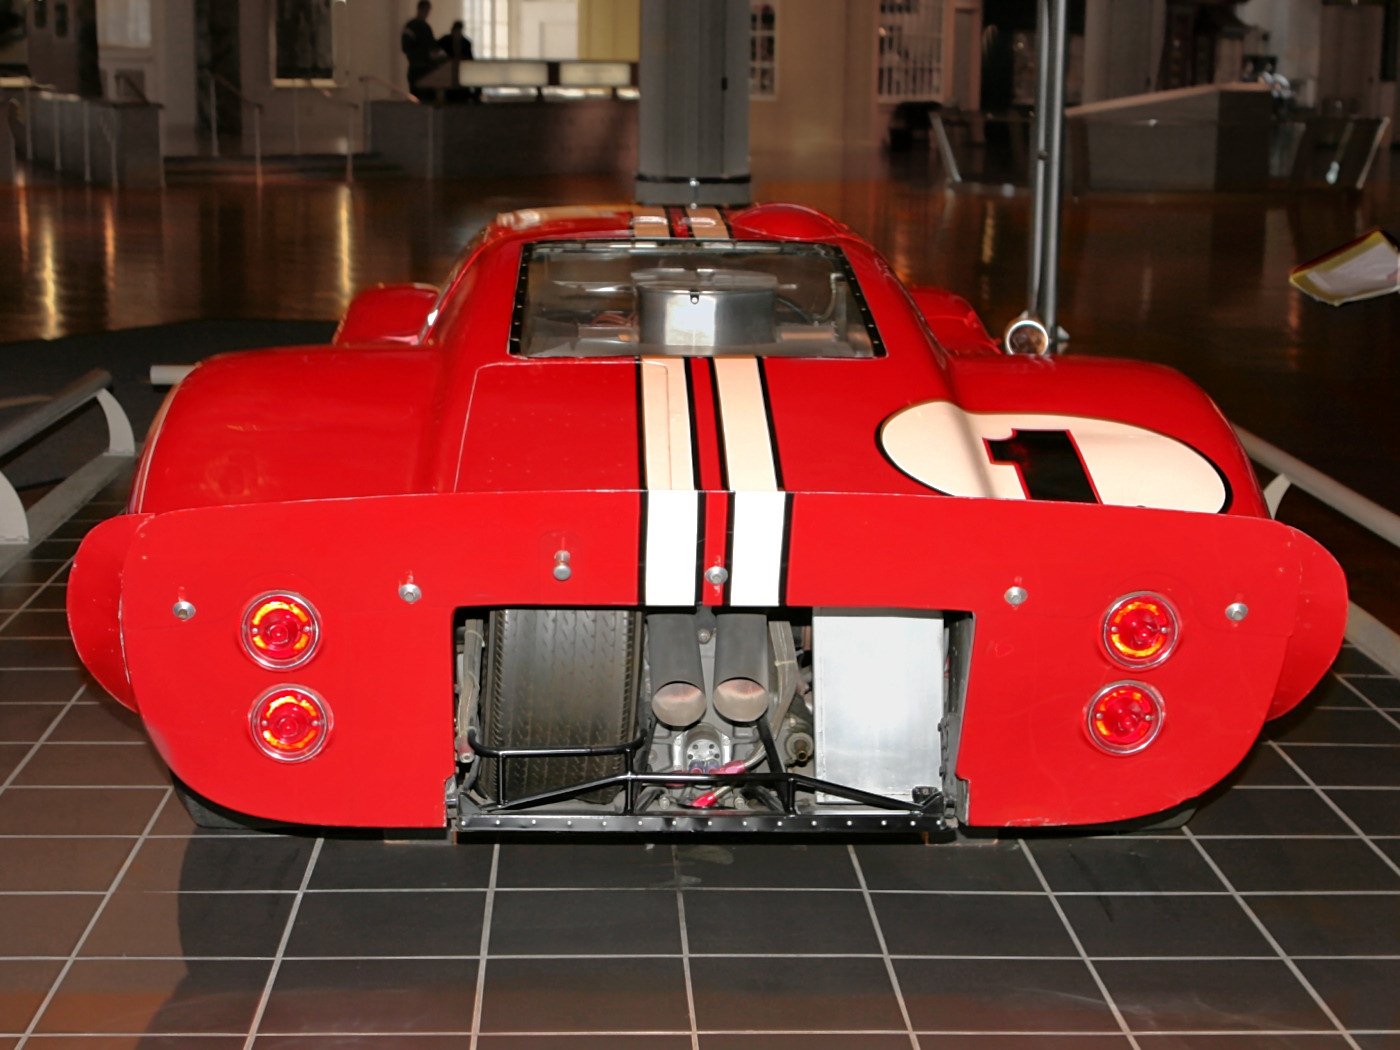 1967 Ford GT-40 Mark IV Hood Red with White Stripe rv (H Ford Museum) CL.jpg